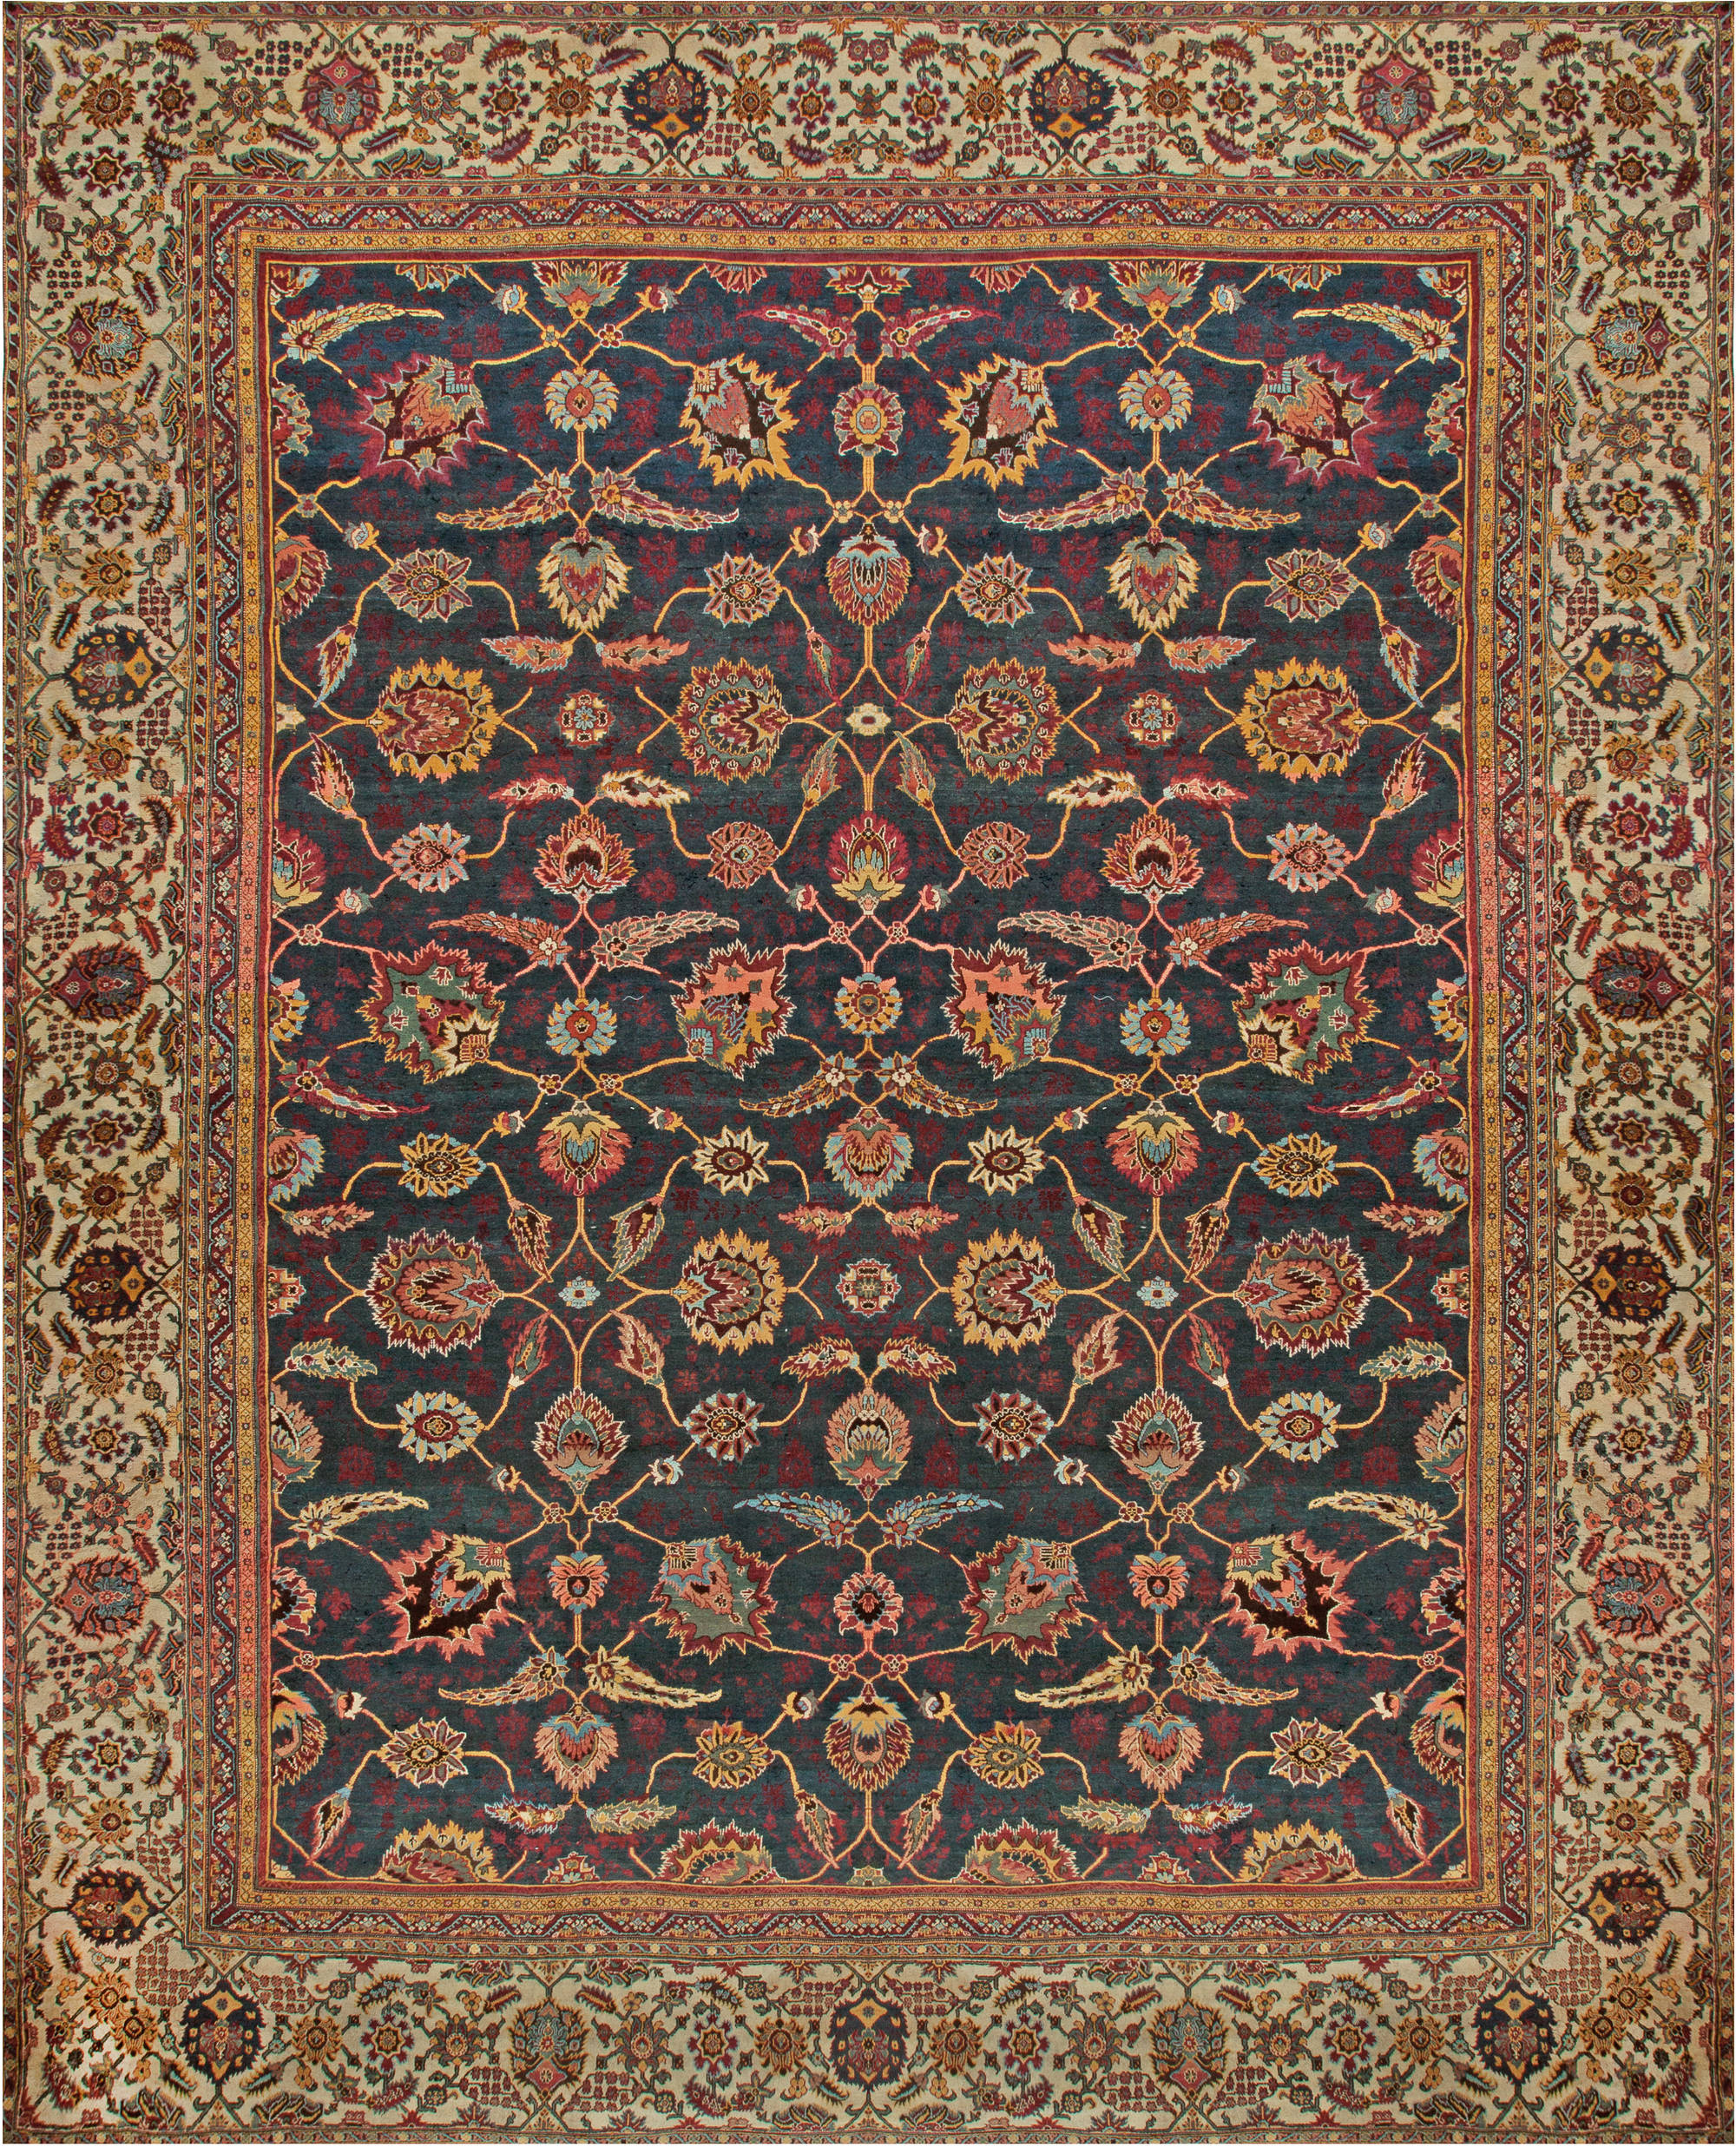 Antique Indian Rugs: Oversized Antique Indian Amritsar Rug BB6812 By Doris